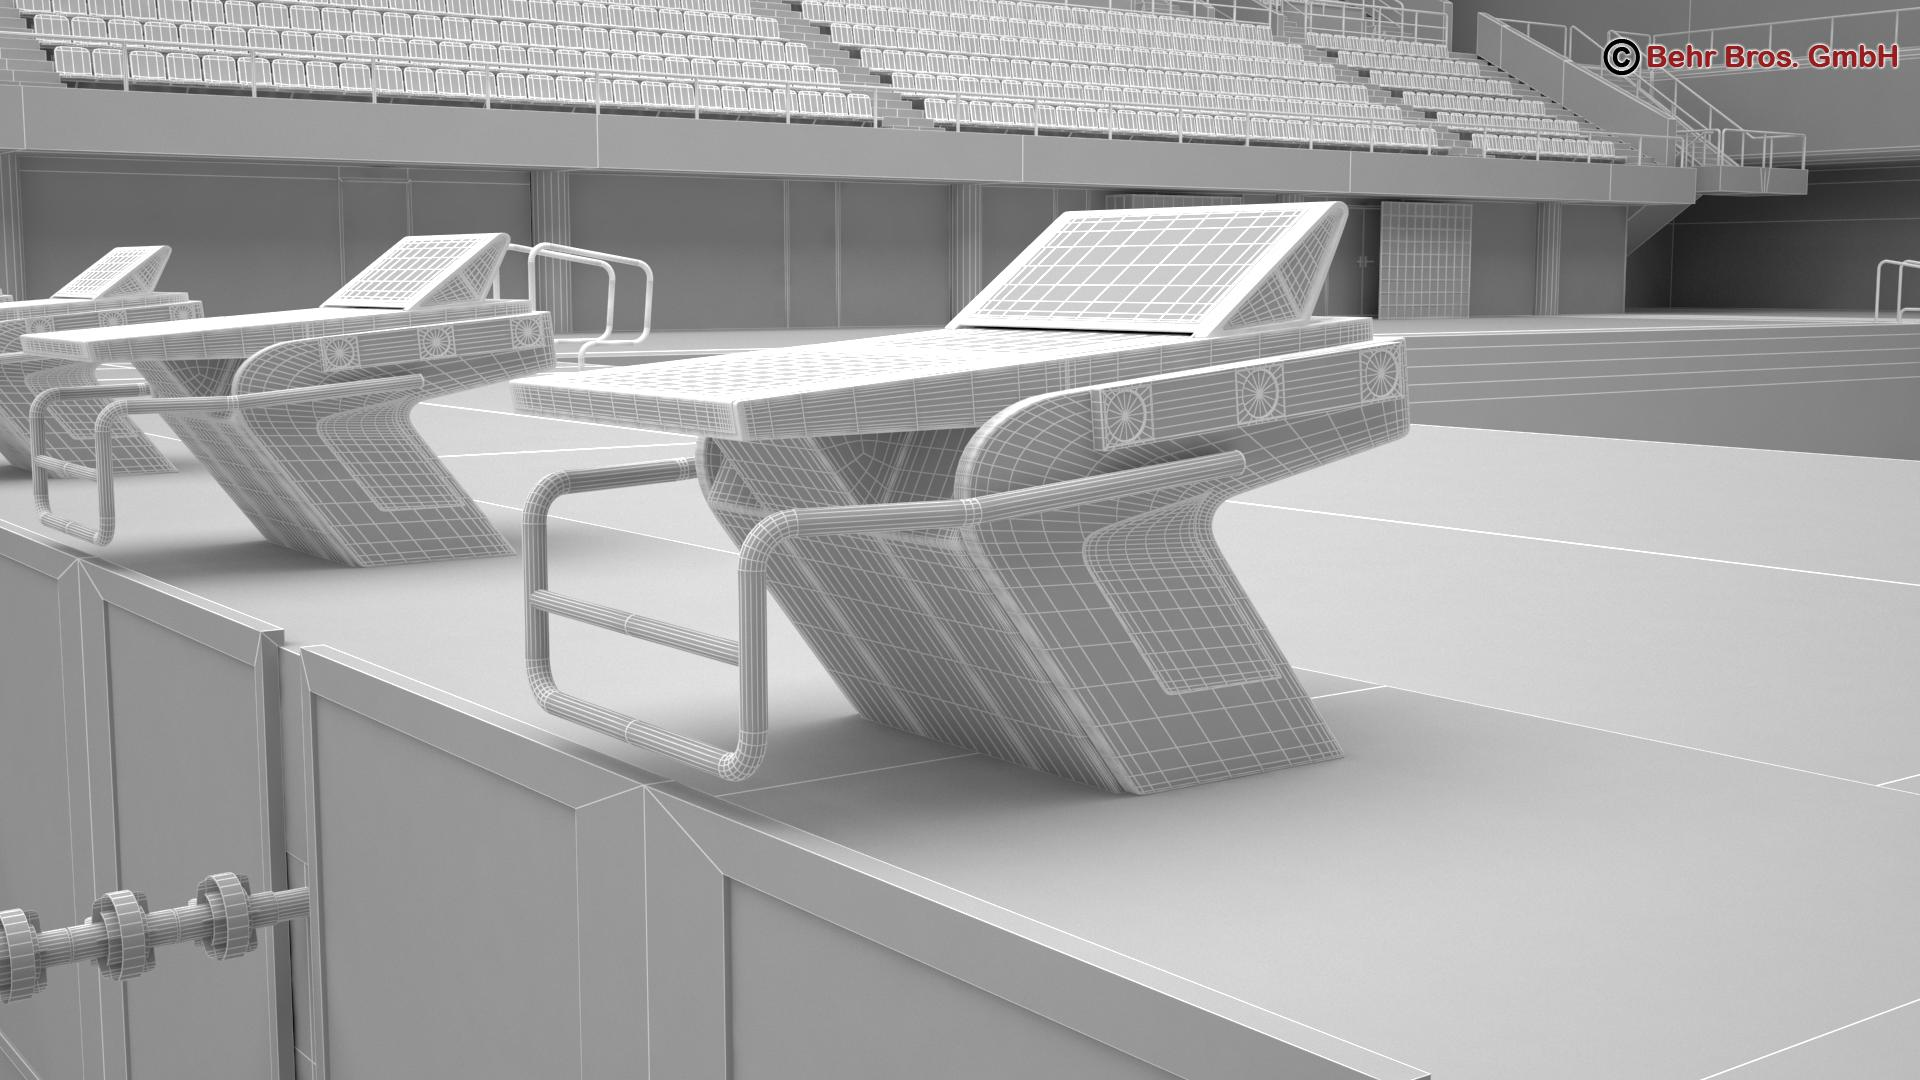 swim stadium 3d model 3ds max fbx c4d lwo ma mb obj 204441